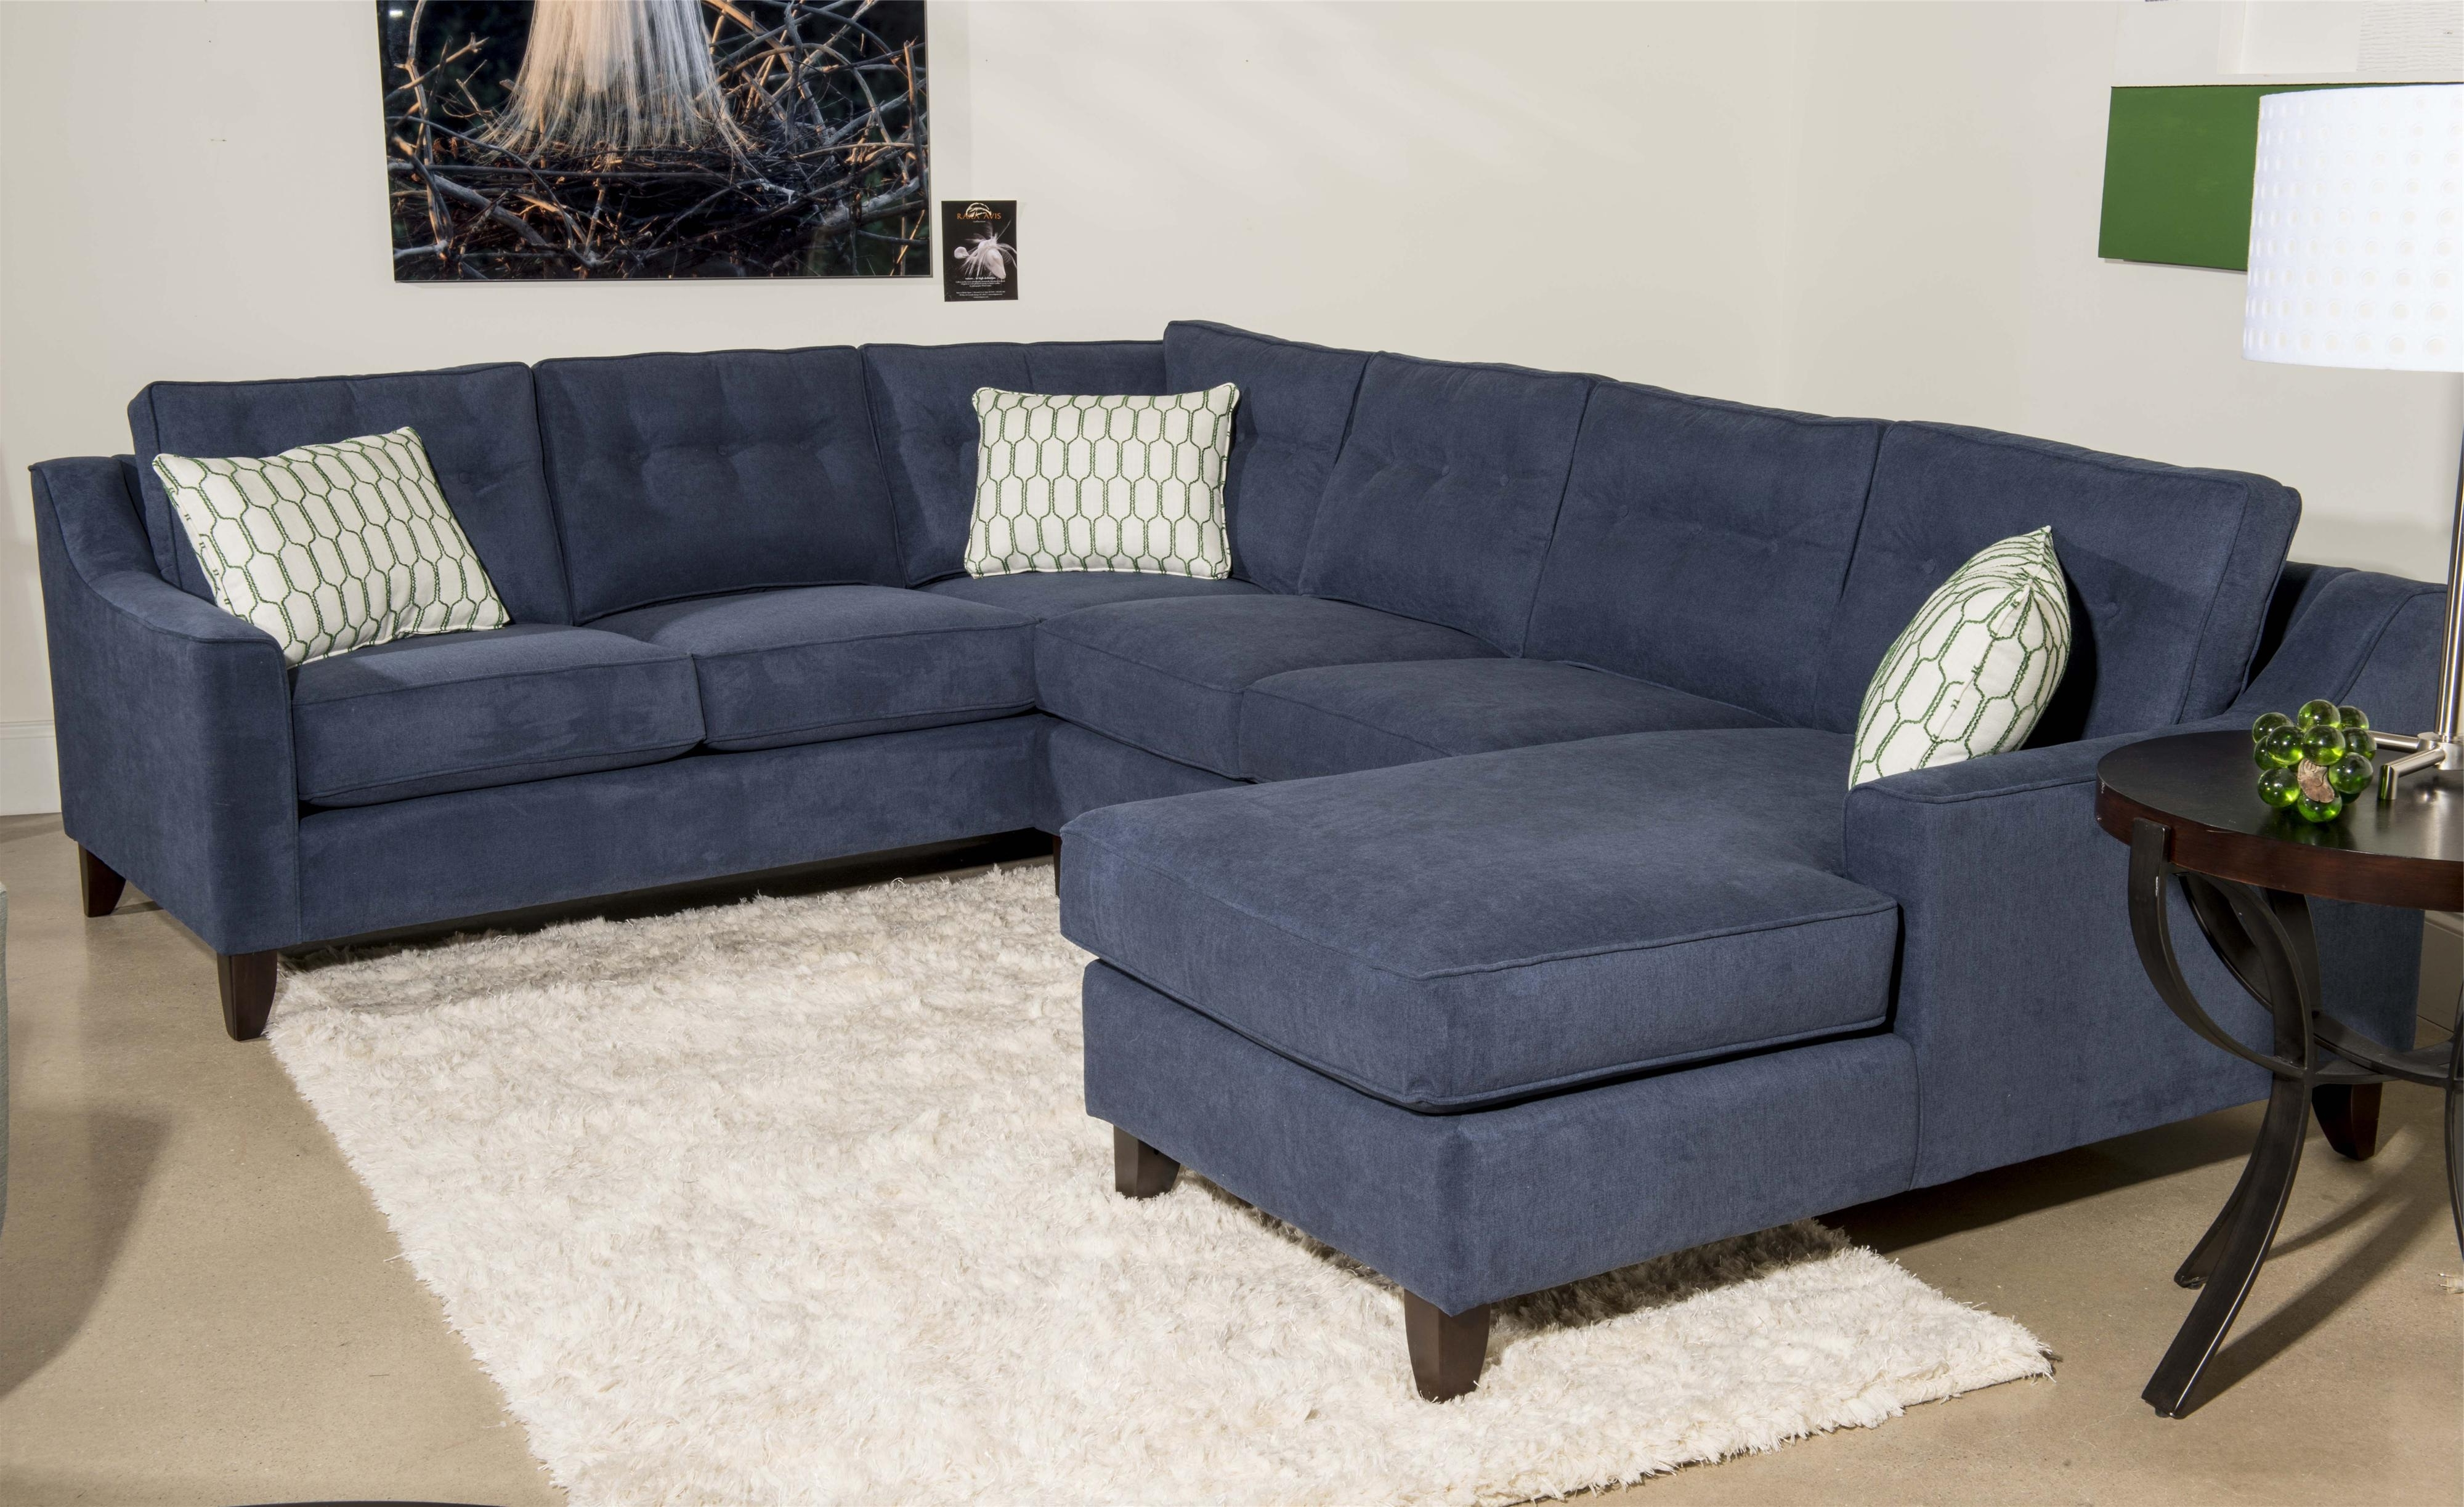 Well Known Blue Sectional Sofas With Chaise For Contemporary 3 Piece Sectional Sofa With Chaiseklaussner (View 15 of 15)